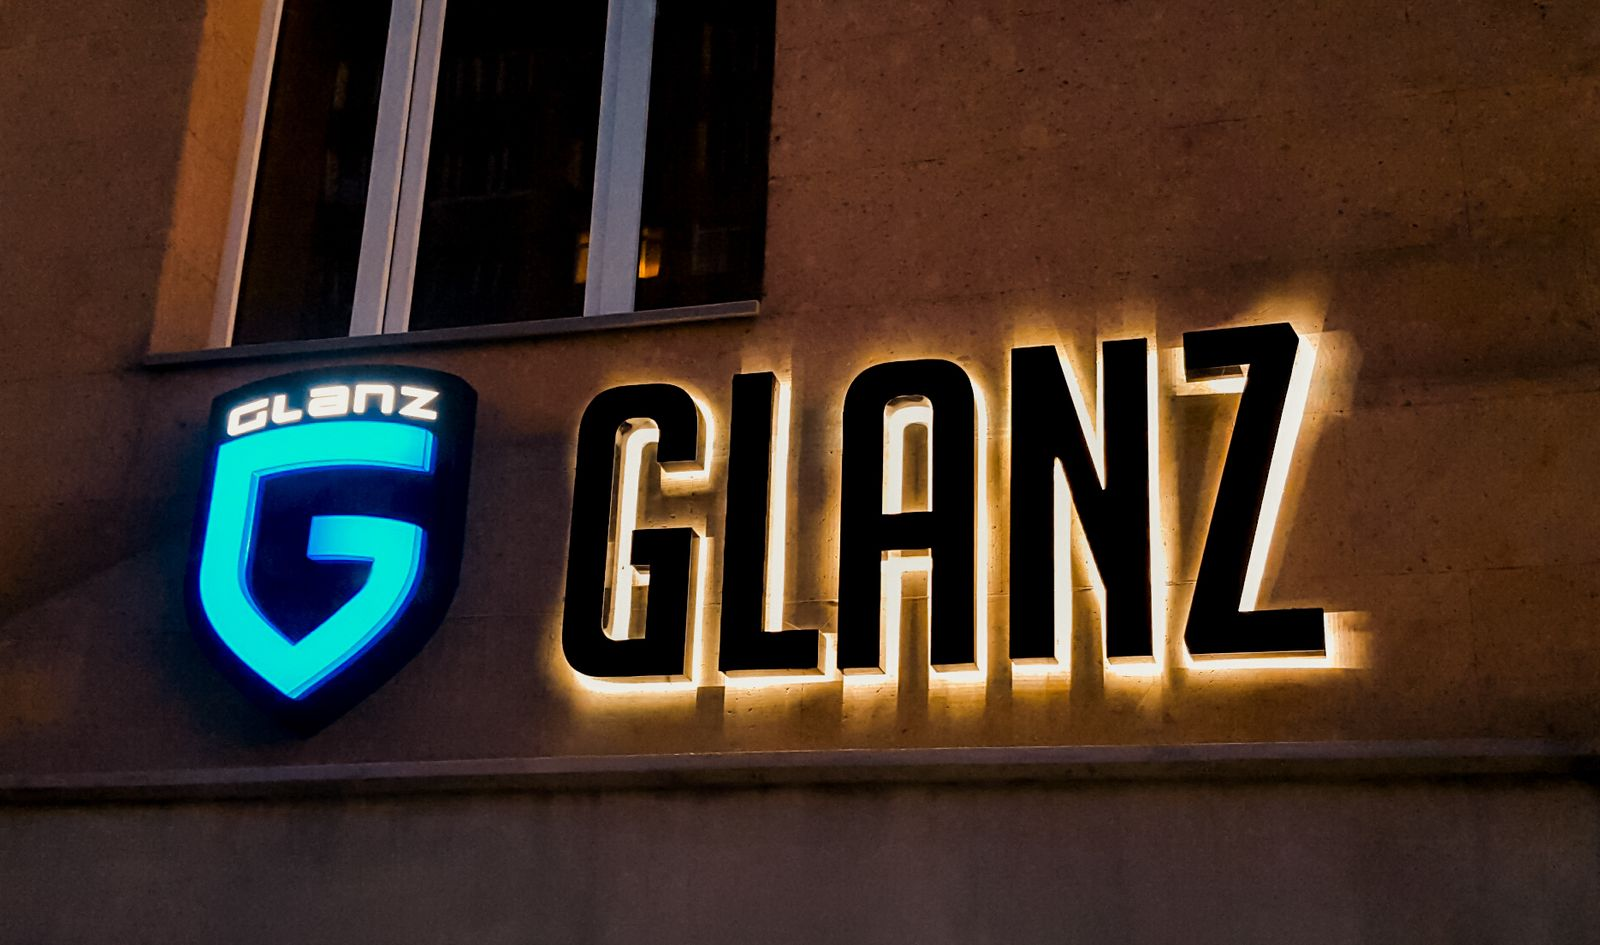 Reverse lit channel letters for an outdoor logo sign